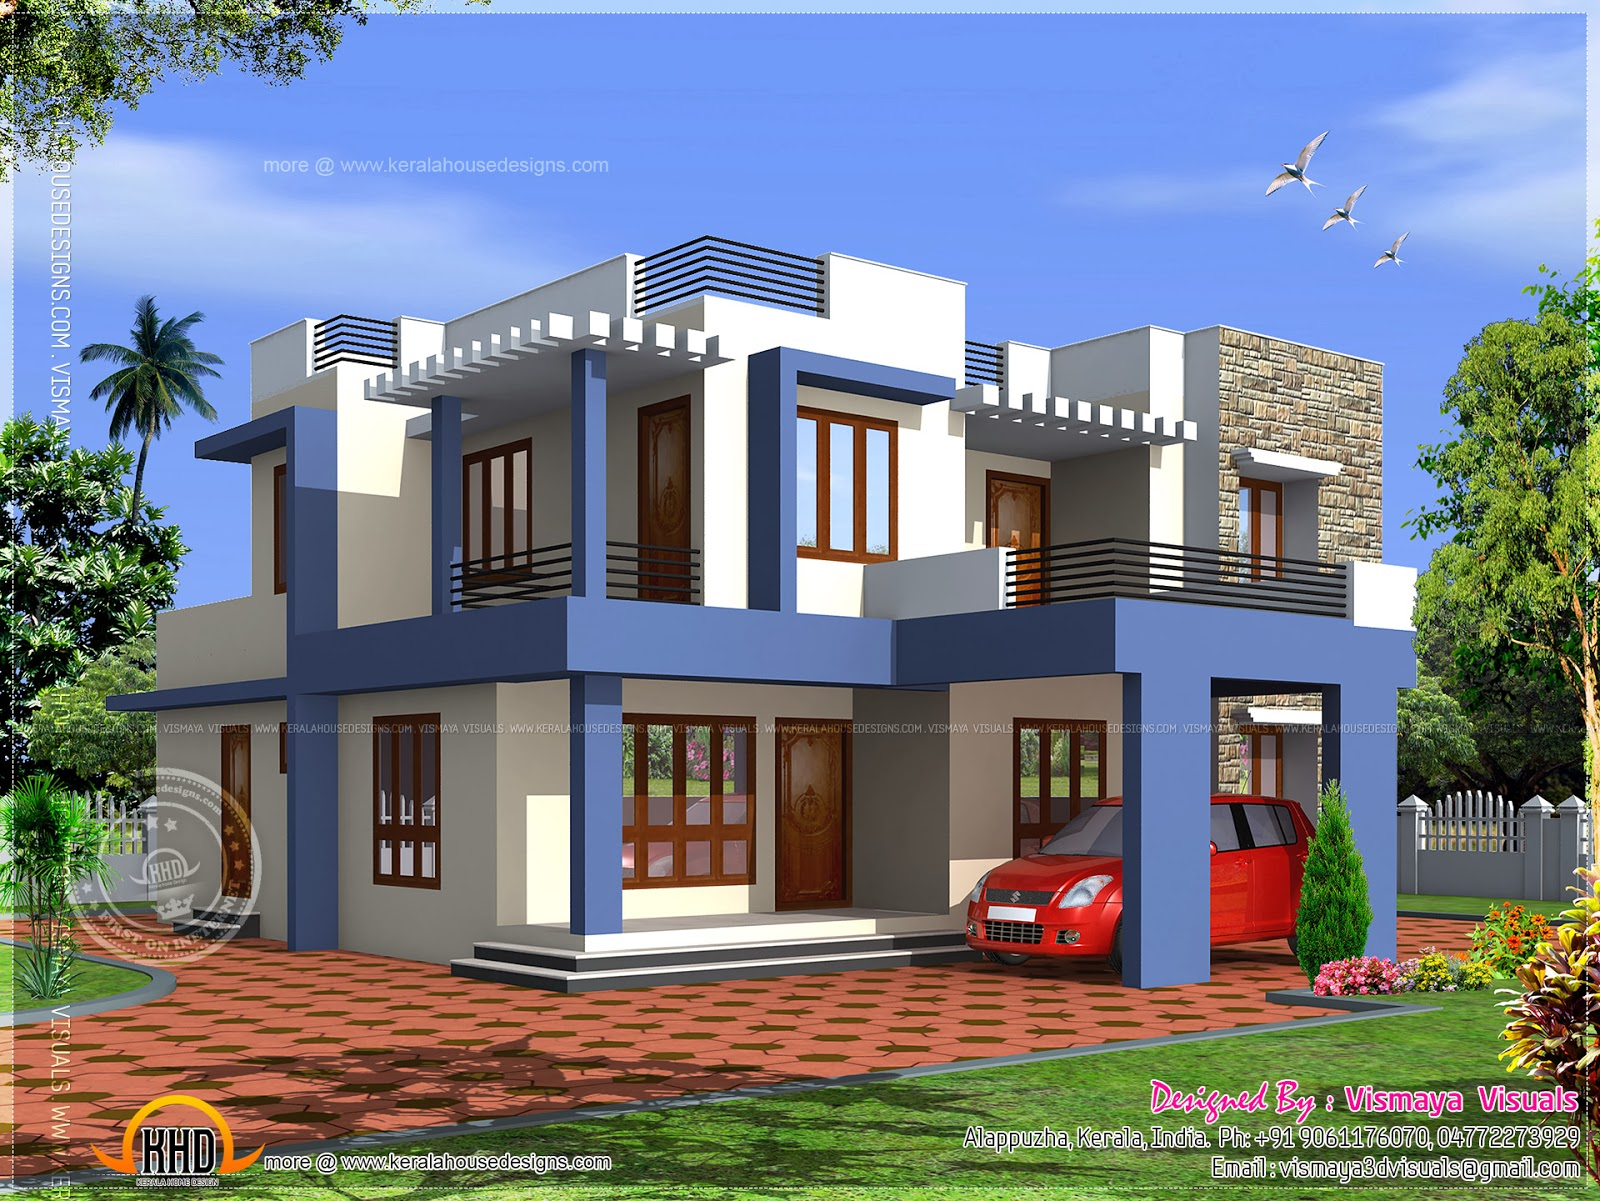 Floor plan of 260 sq m house elevation keralahousedesigns for Variety home designs